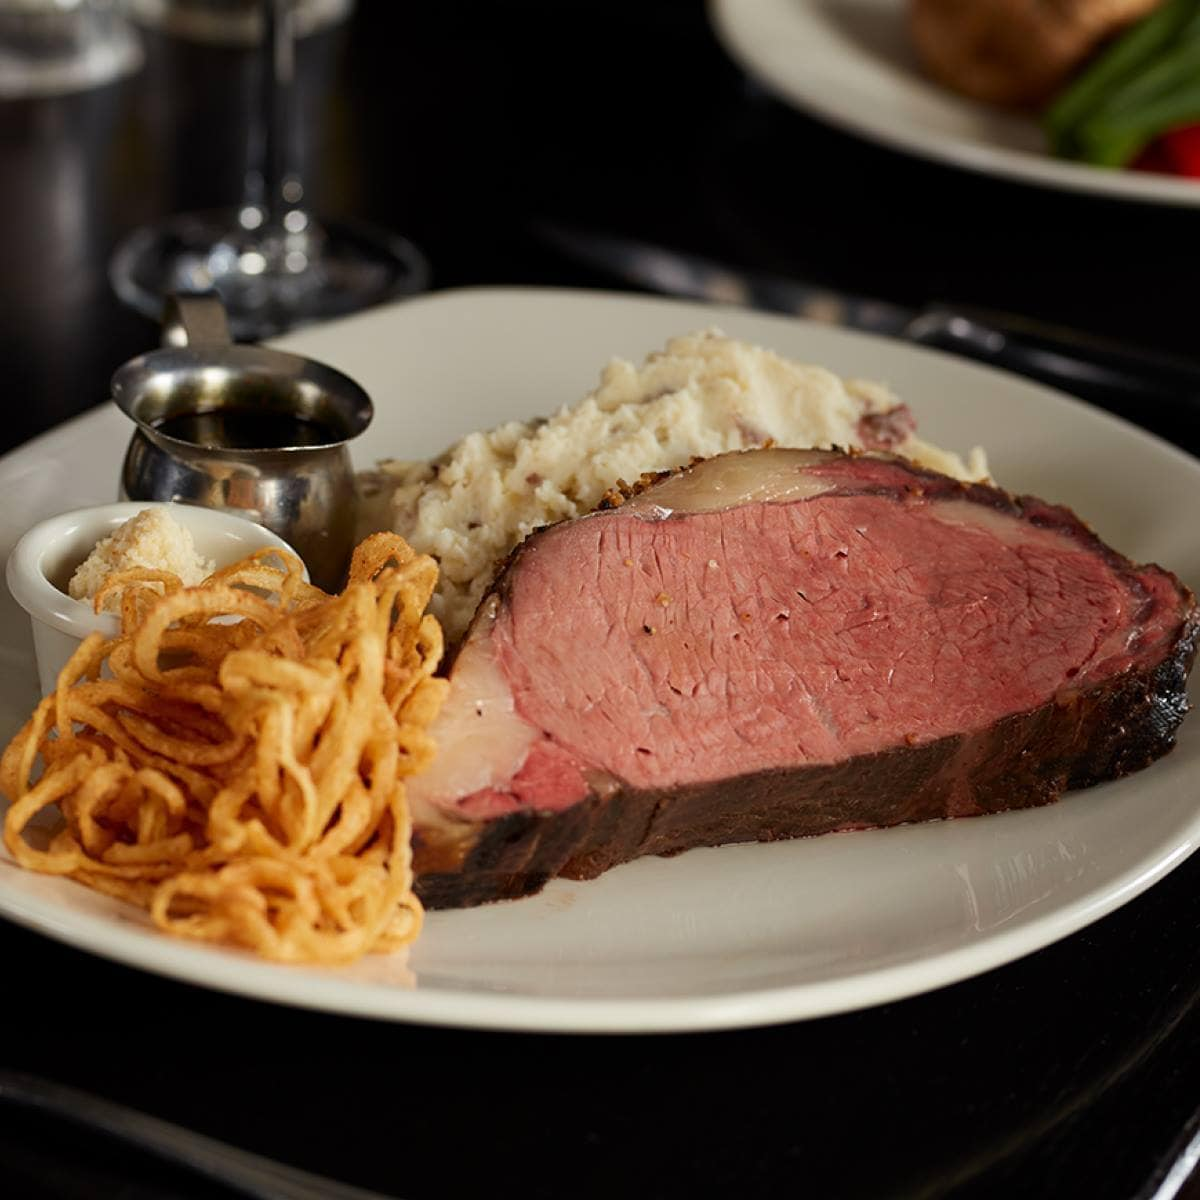 Hearty dishes like prime rib reign supreme at the Keg Steakhouse in Banff